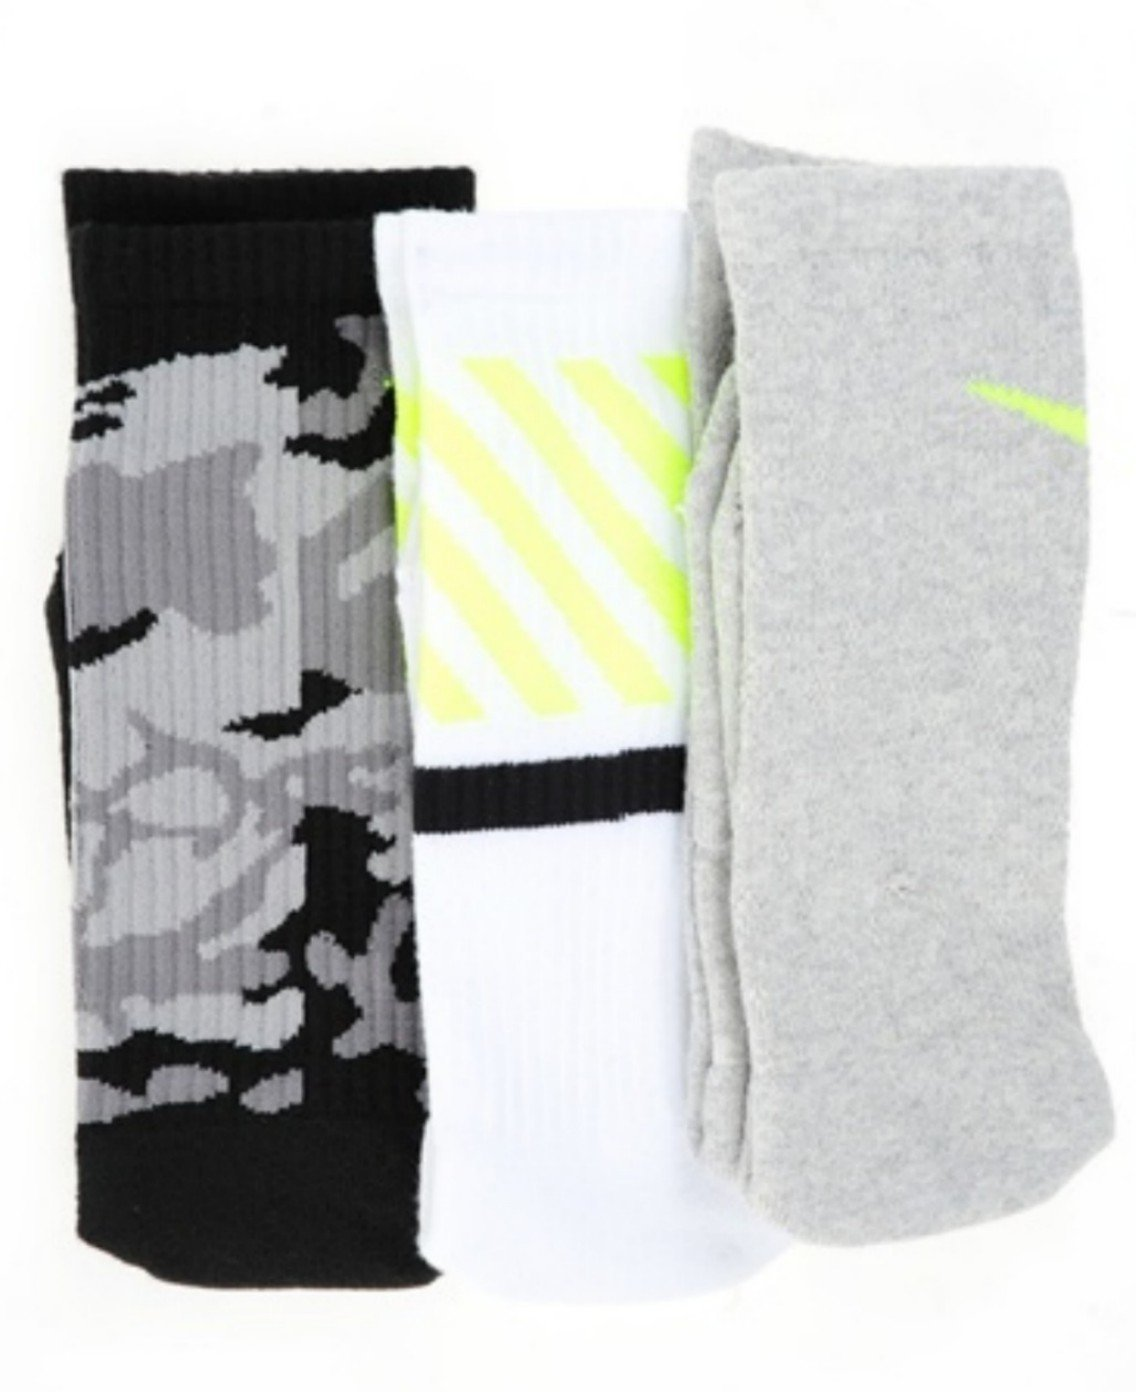 Haz un experimento víctima Maravilla  Buy NIKE Dri-Fit Cotton Cushioned Triple Fly Crew Socks 3 Pair Pack  (Camo-Black/Wolf Grey/White) MED in Cheap Price on Alibaba.com